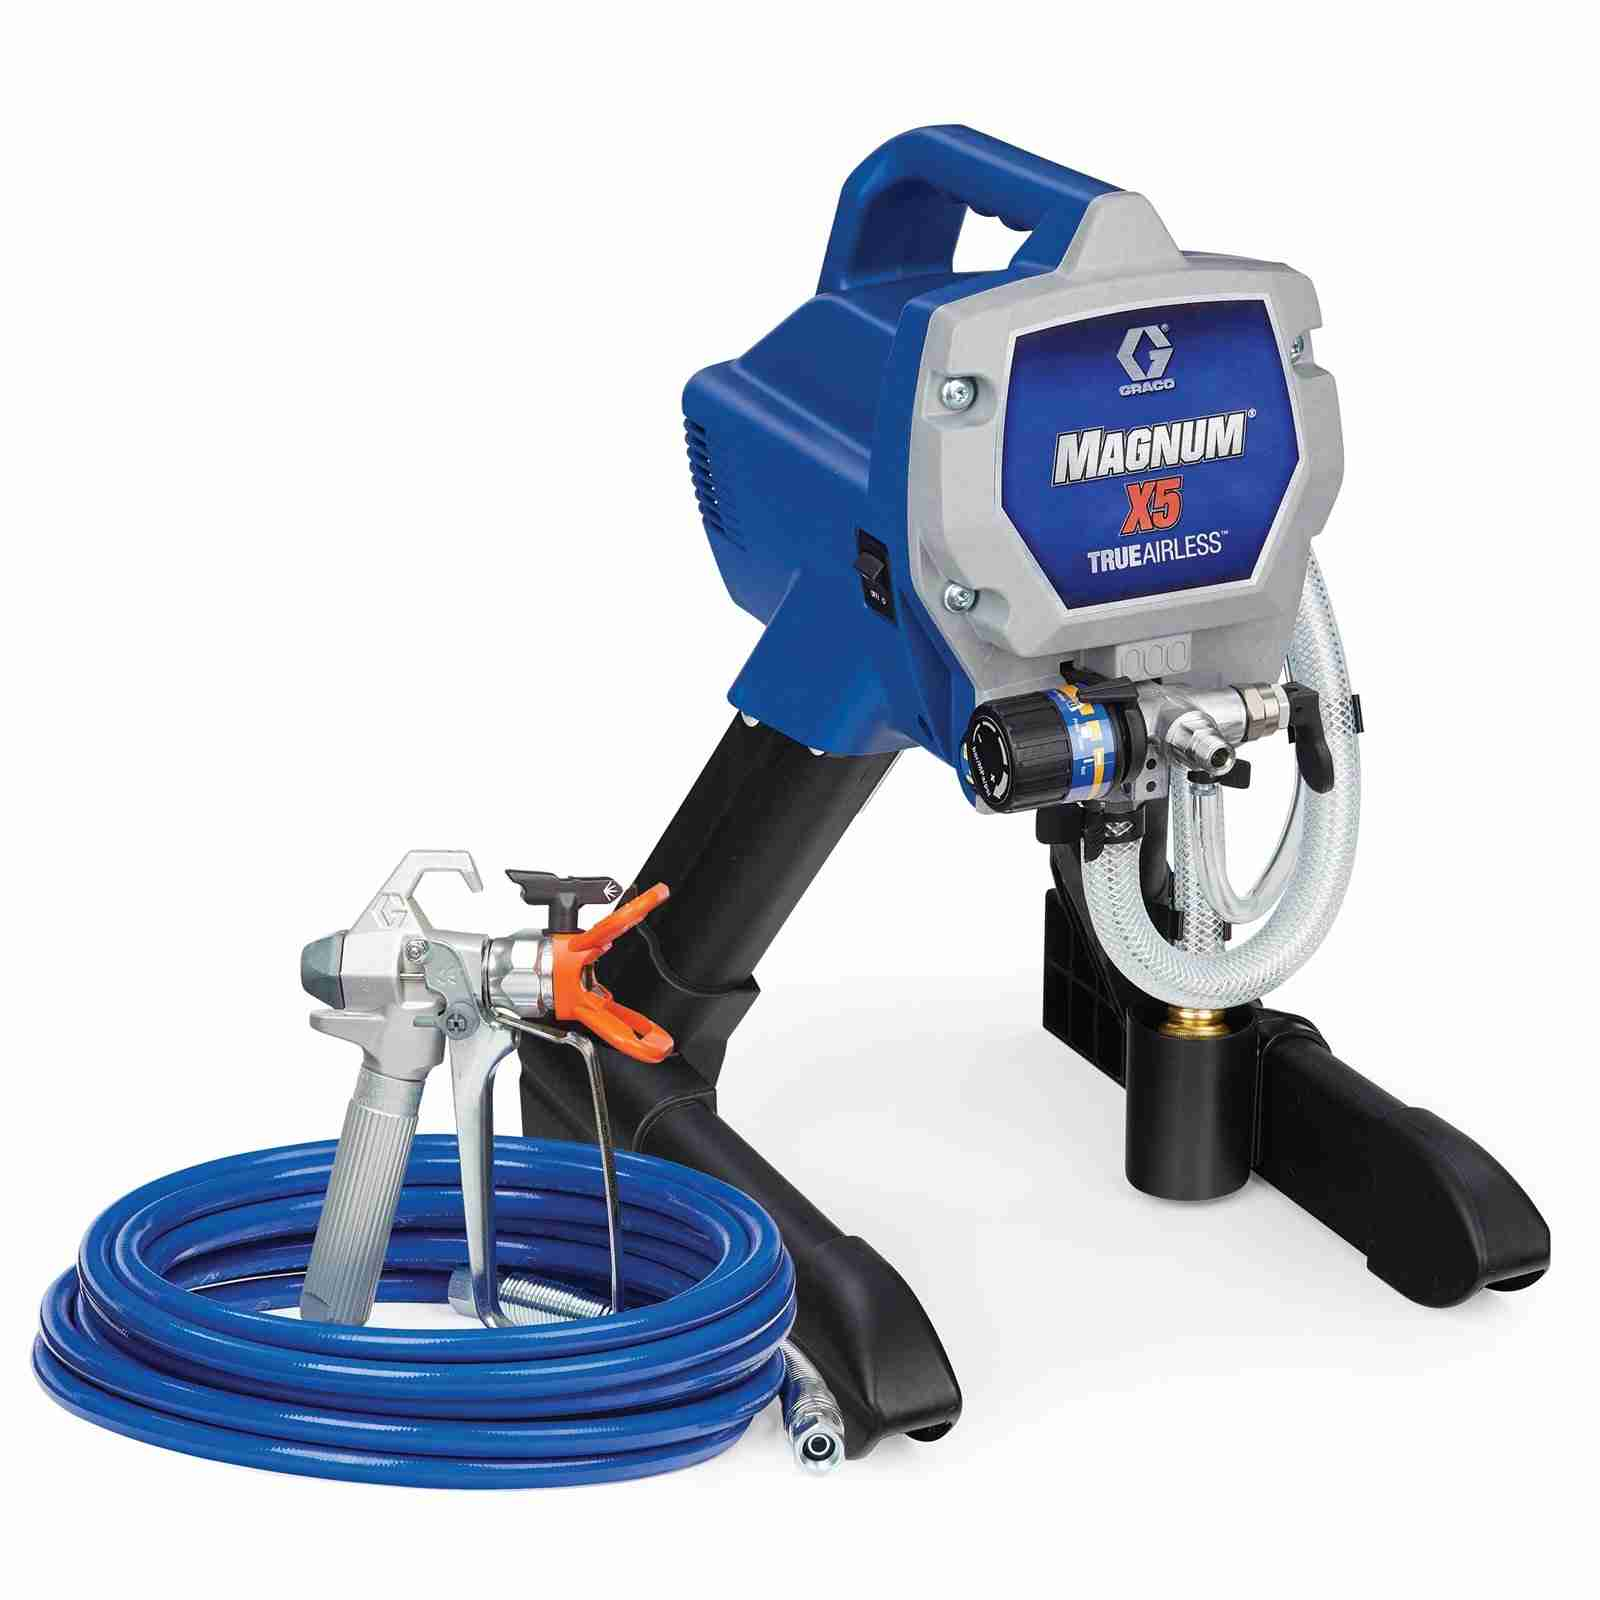 Graco X5 Paint Sprayer Review – Great DIY Airless Sprayer